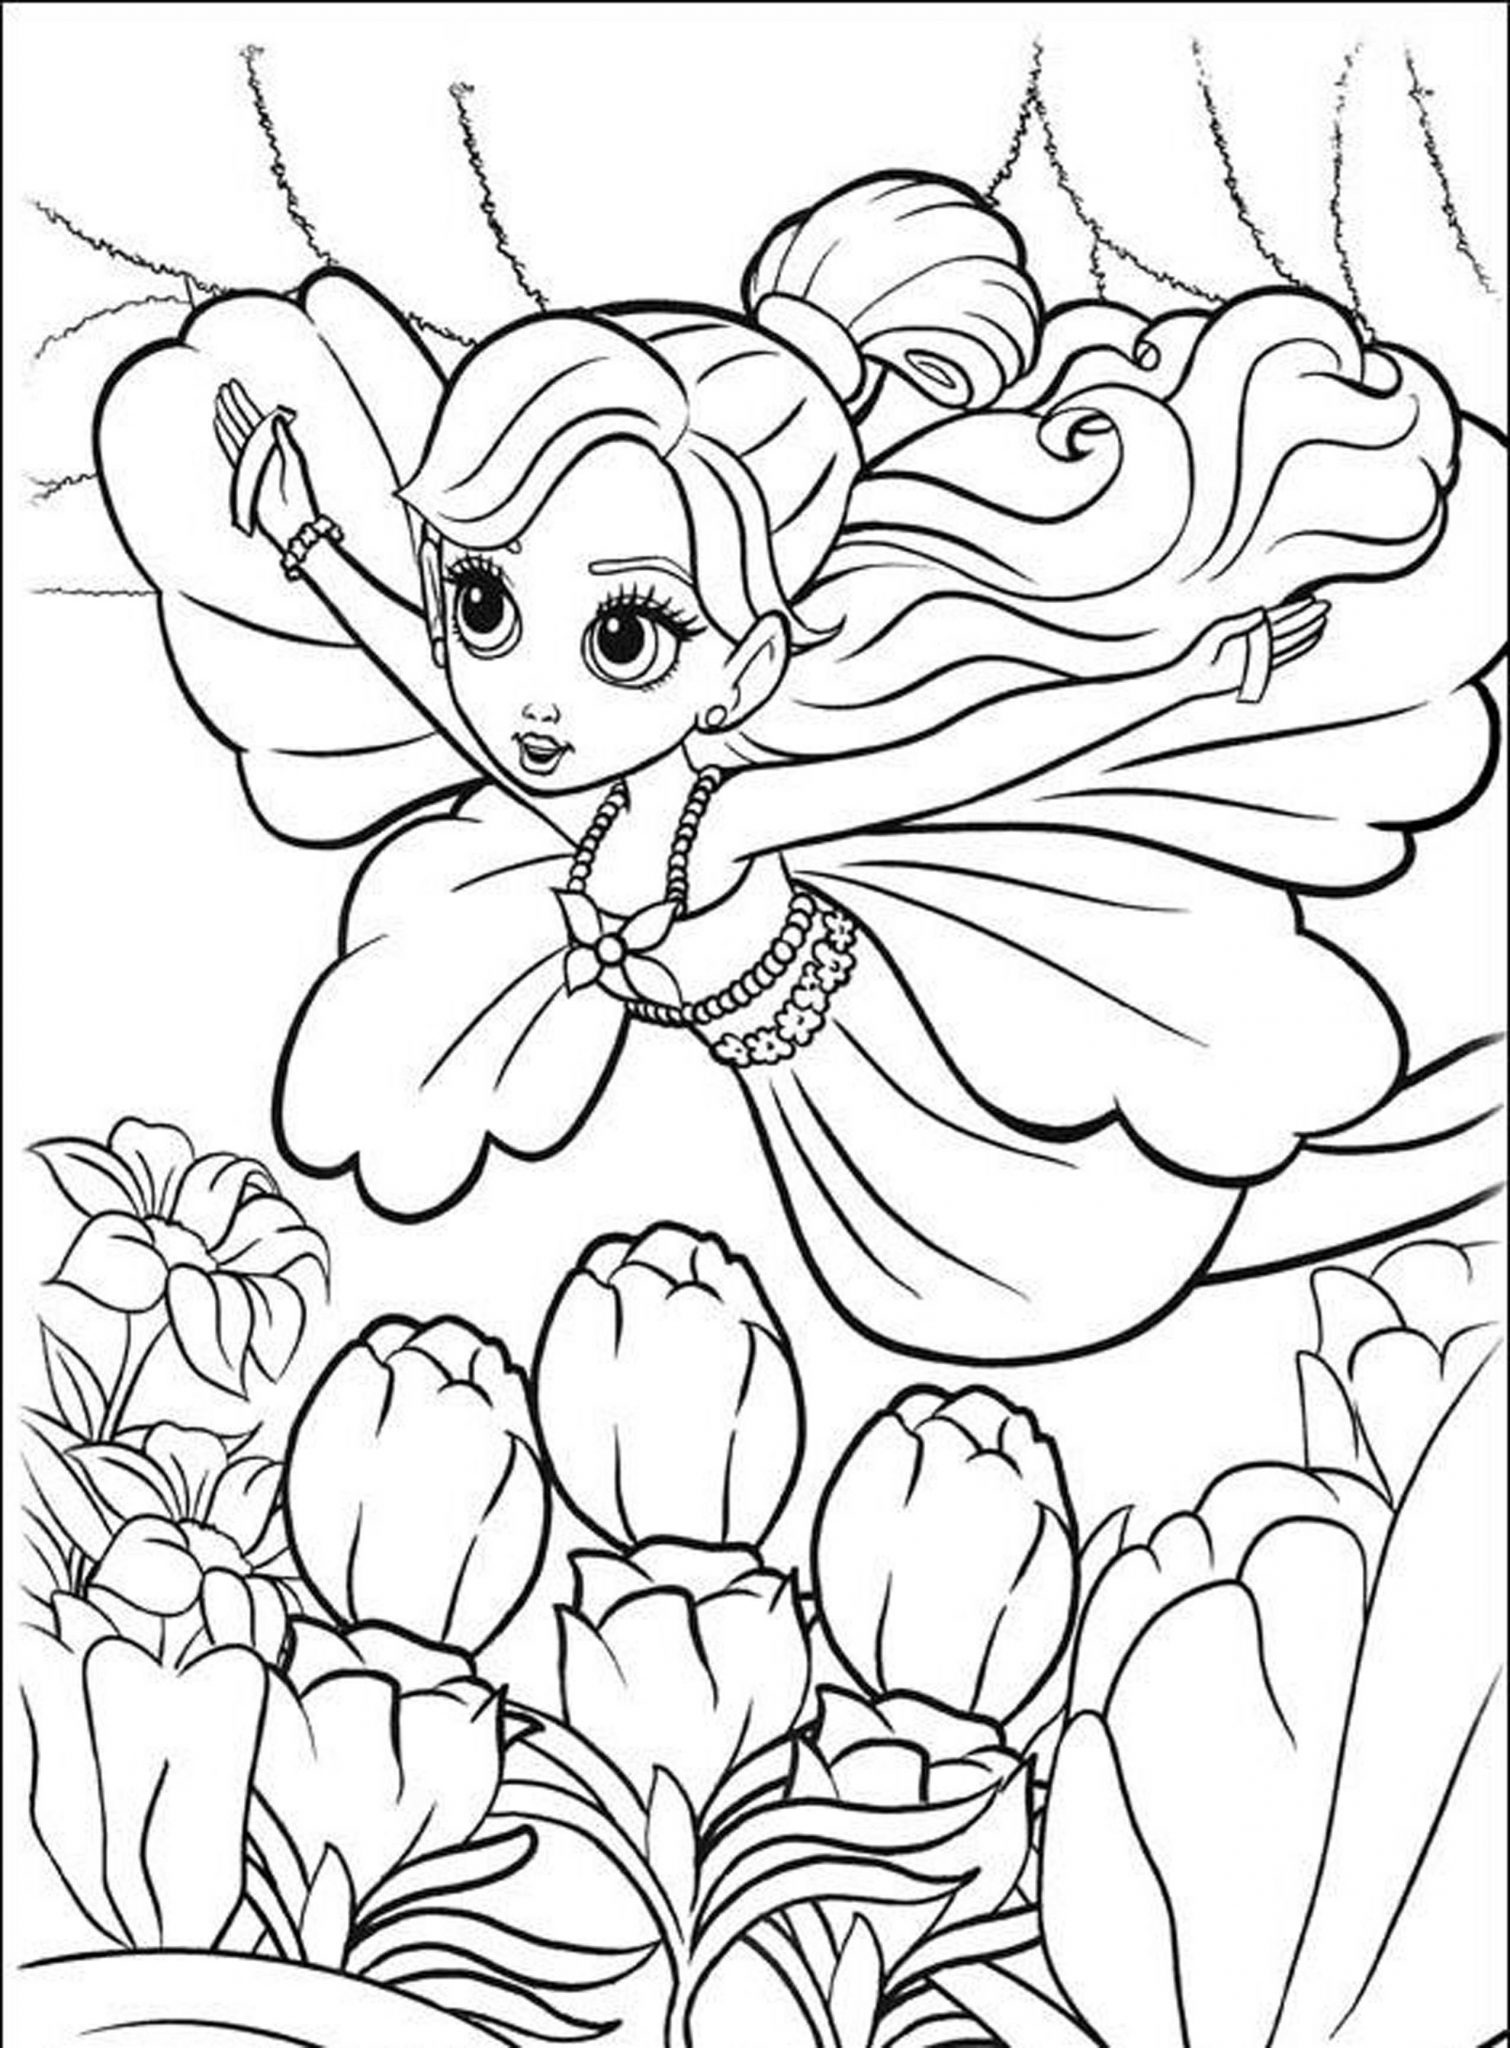 coloring pages of girls moxie coloring pages free printable moxie coloring pages girls pages of coloring